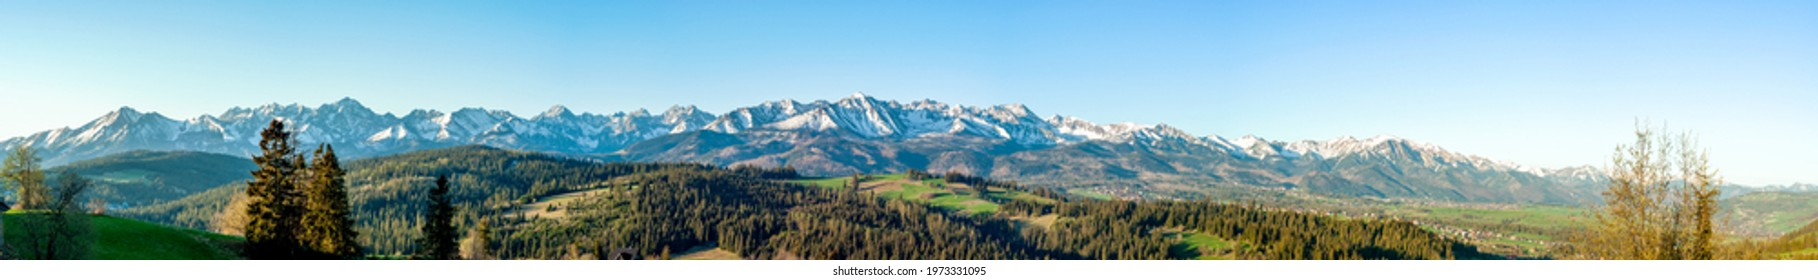 Extra wide panorama of the Tatra Mountains with trees, forests and meadows in Podhale region in Poland. Early morning in spring, sunrise light